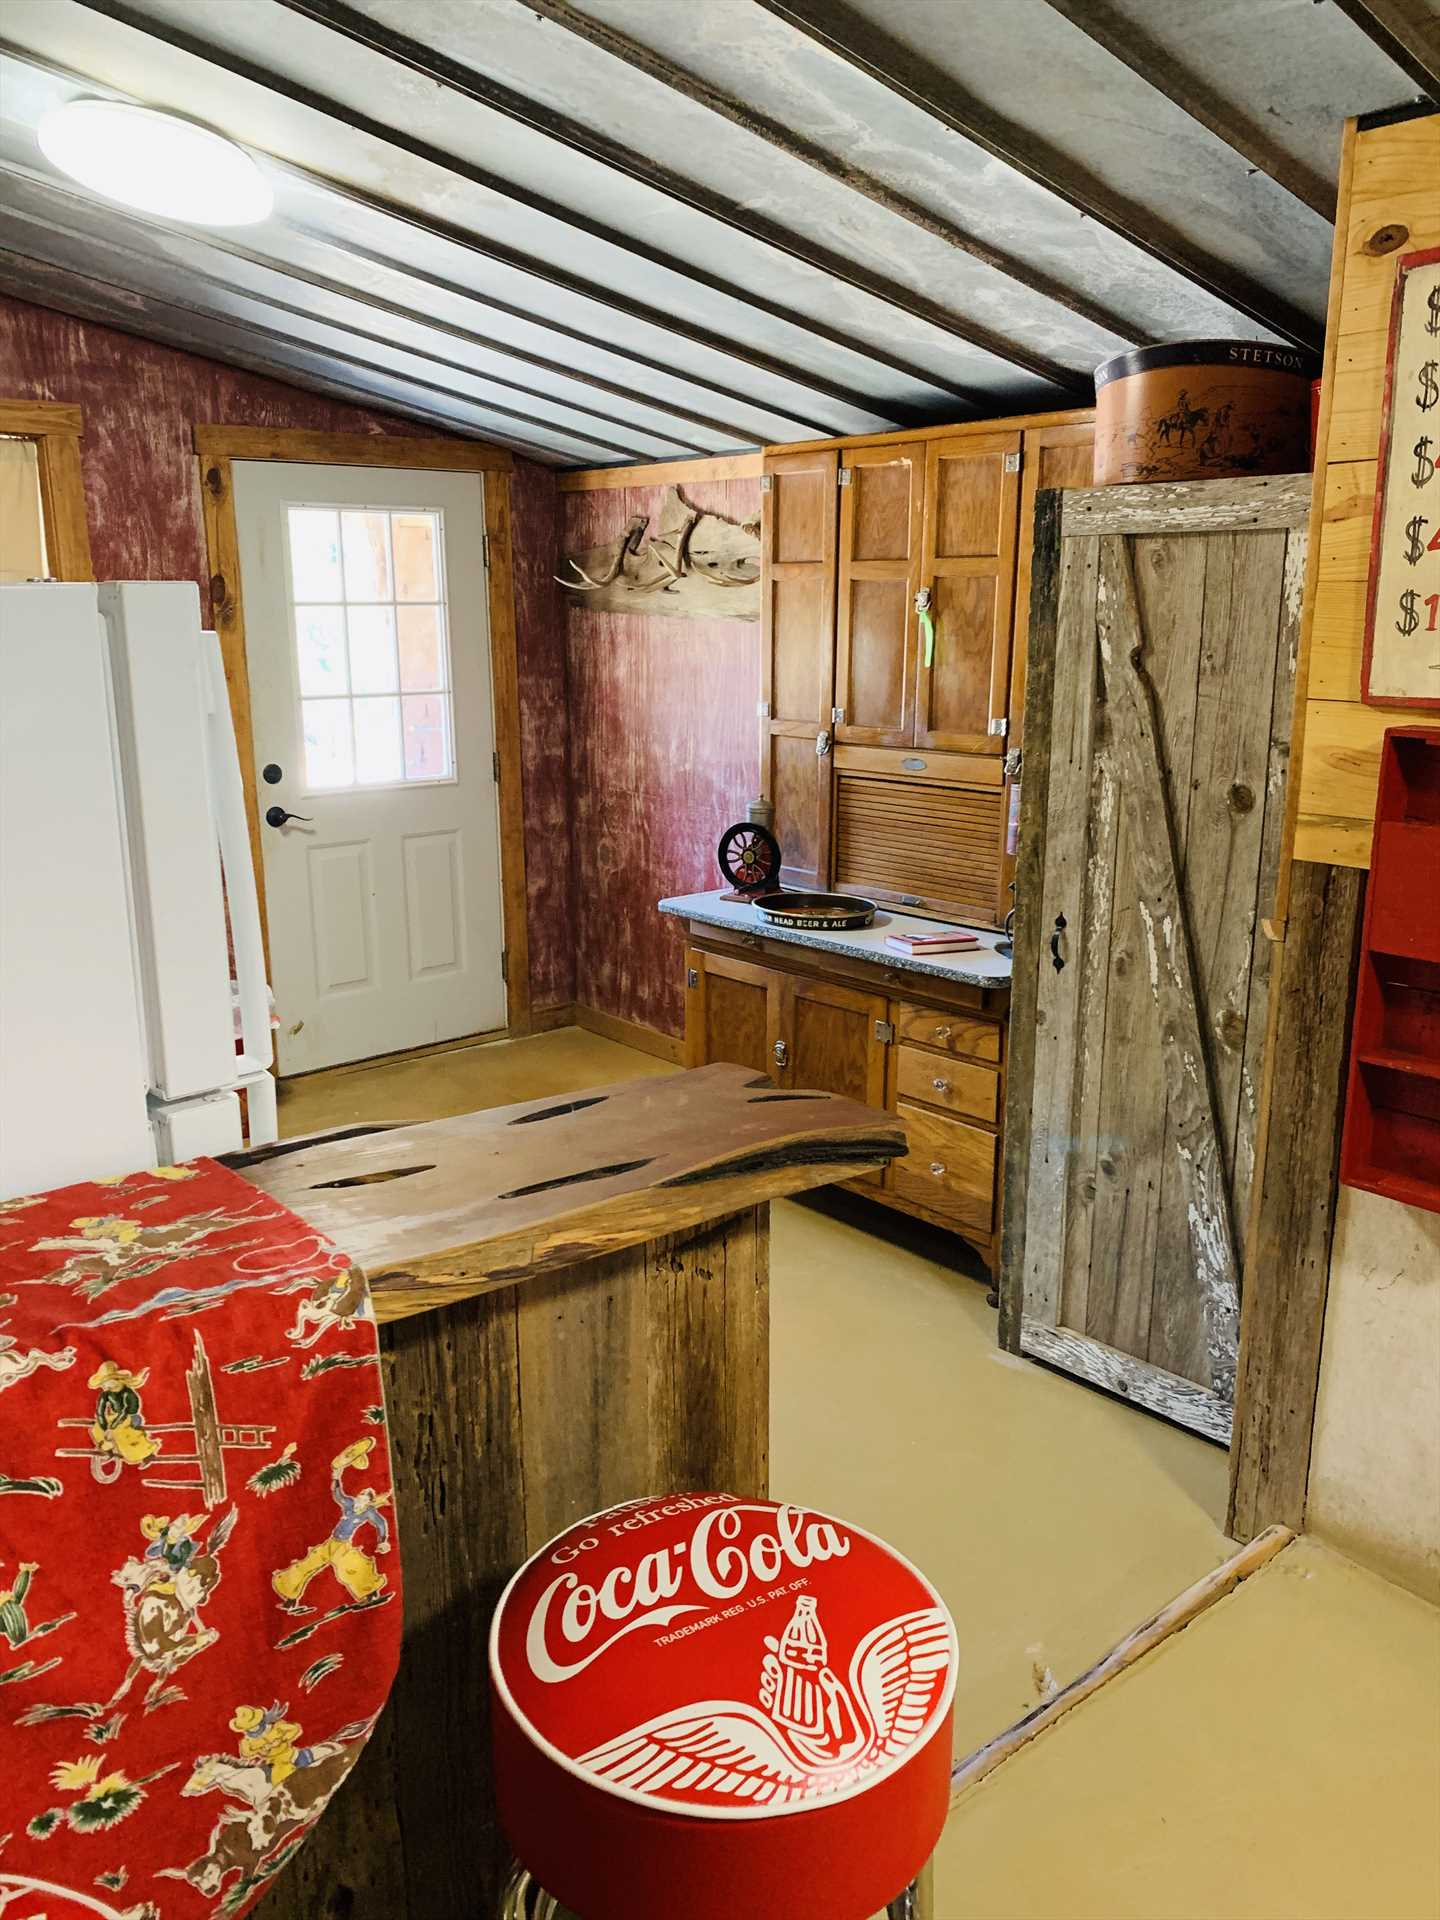 Vintage rustic touches and corrugated ceilings give the cabin a unique and welcoming atmosphere.